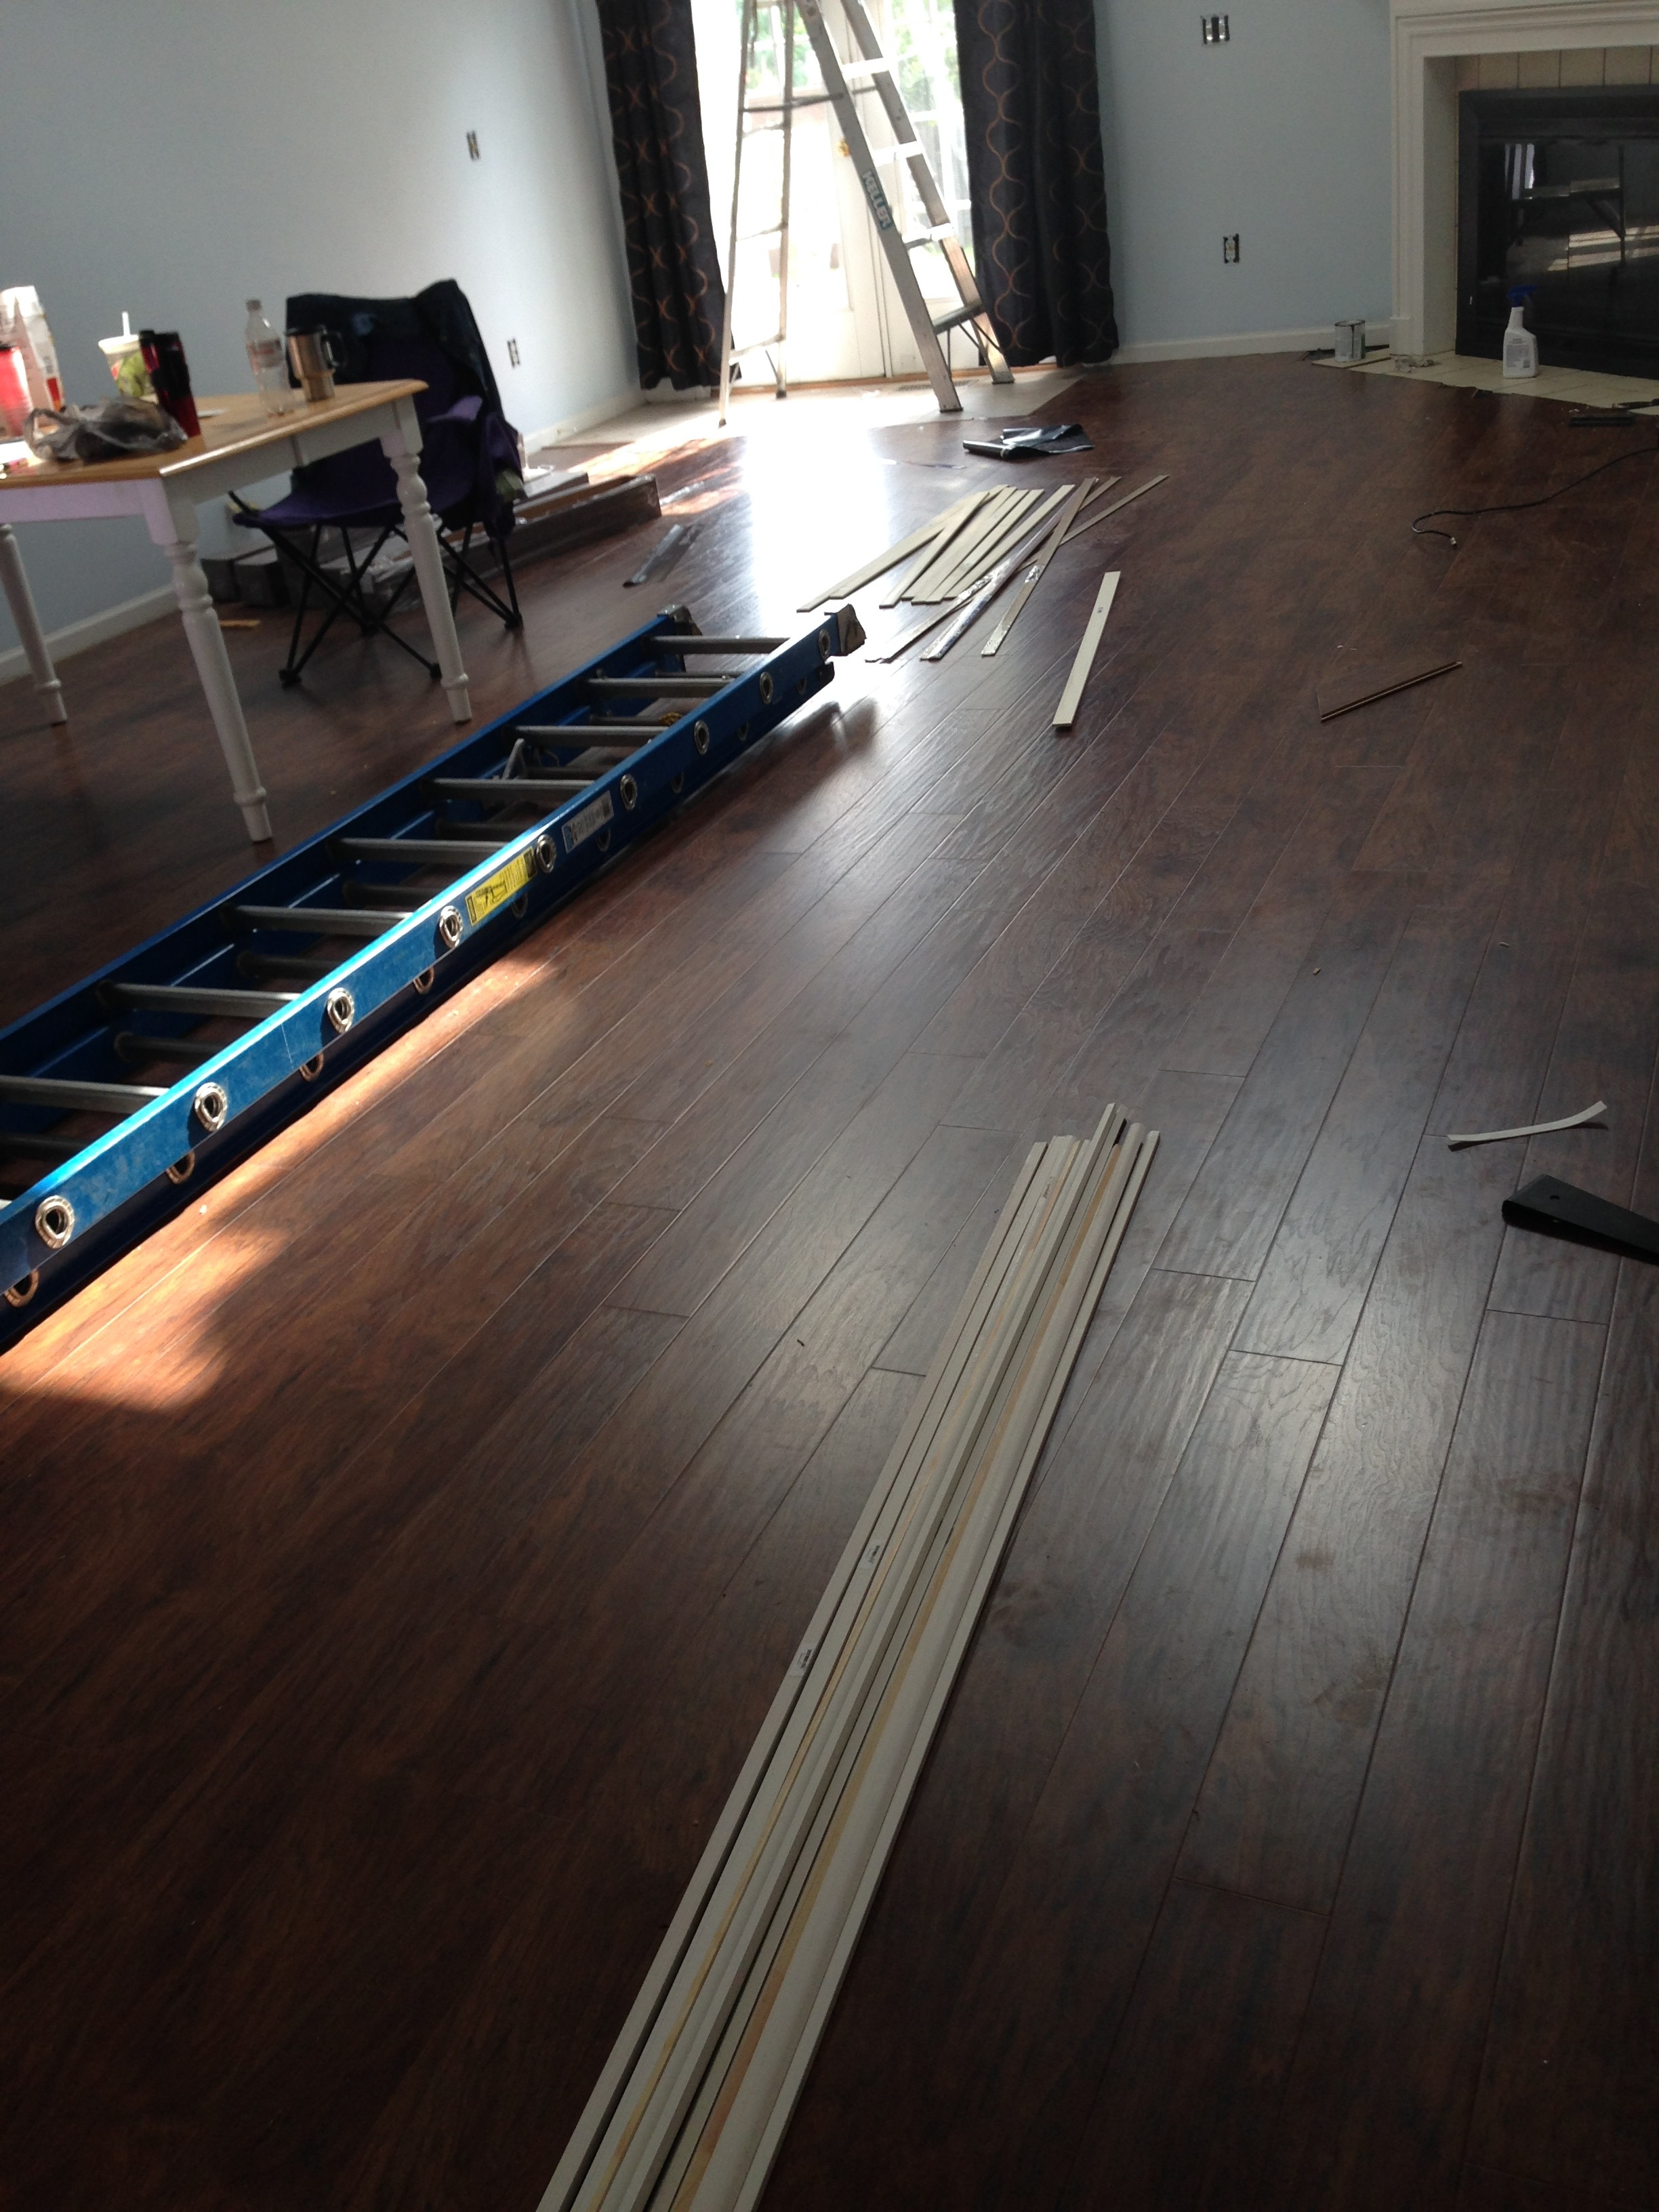 Superior Allen Roth Laminate Flooring Installation Instructions Part - 5: Have You Ever Installed Laminate Floors Before